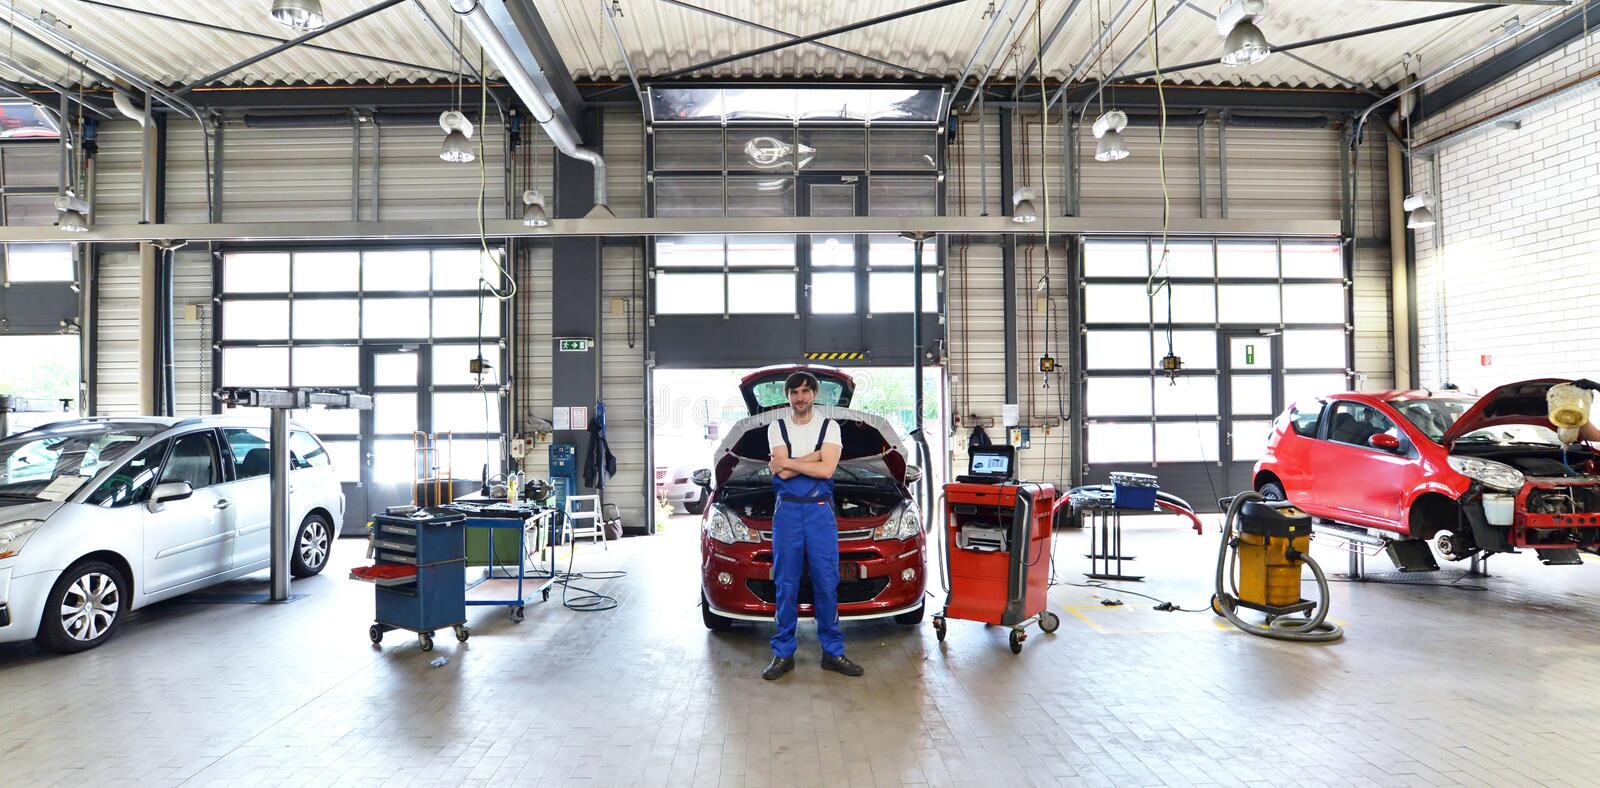 portrait of a successful mechanic in a garage - repair and service of vehicles stock photography